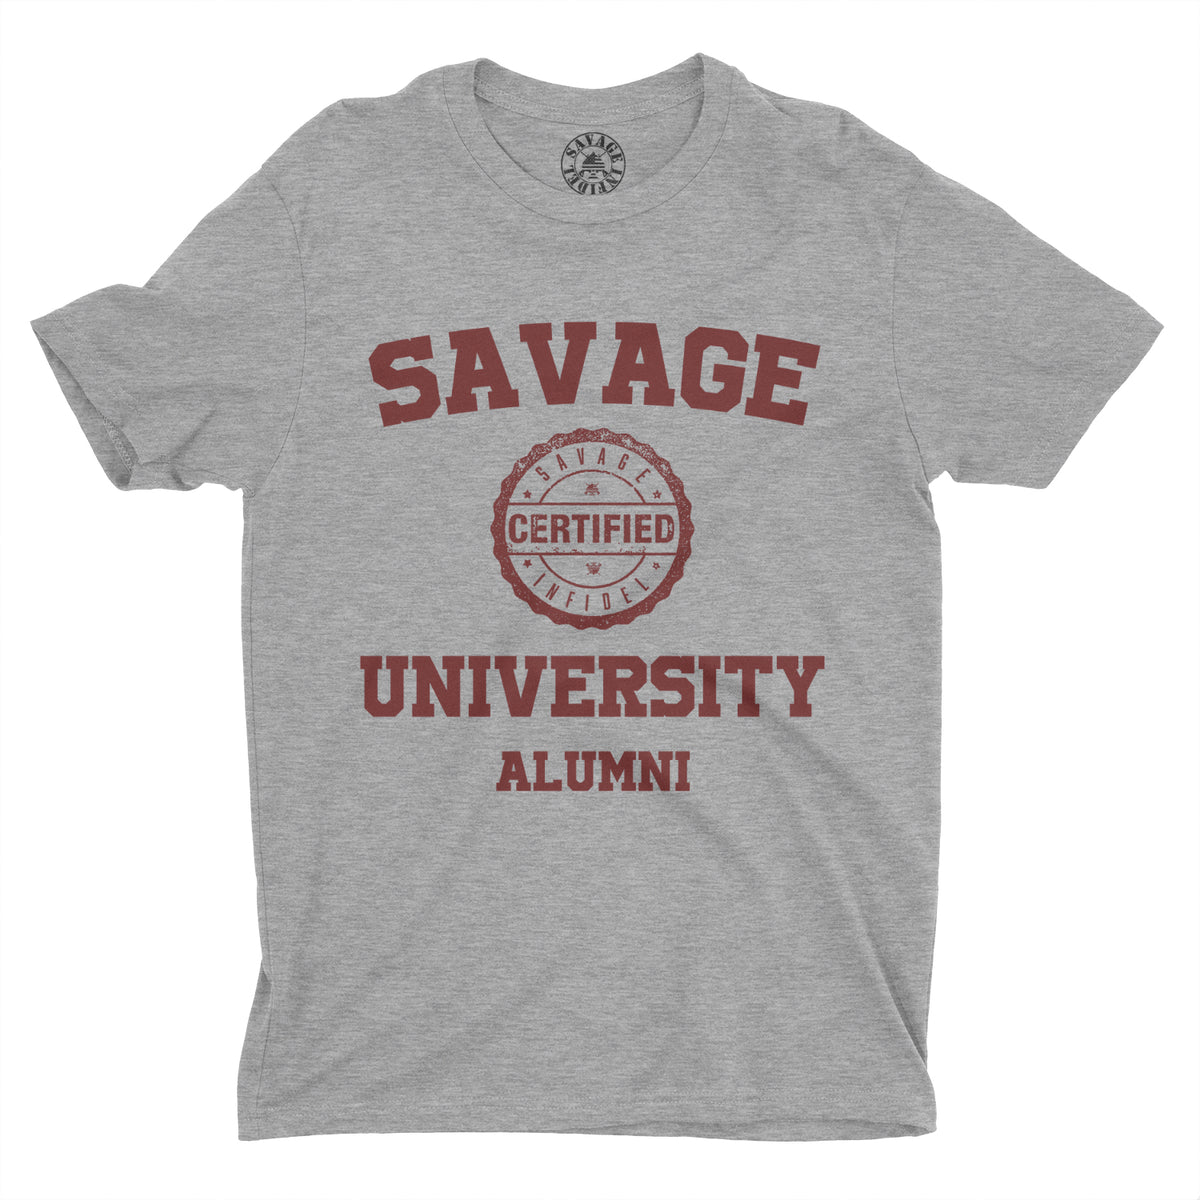 Savage University Alumni